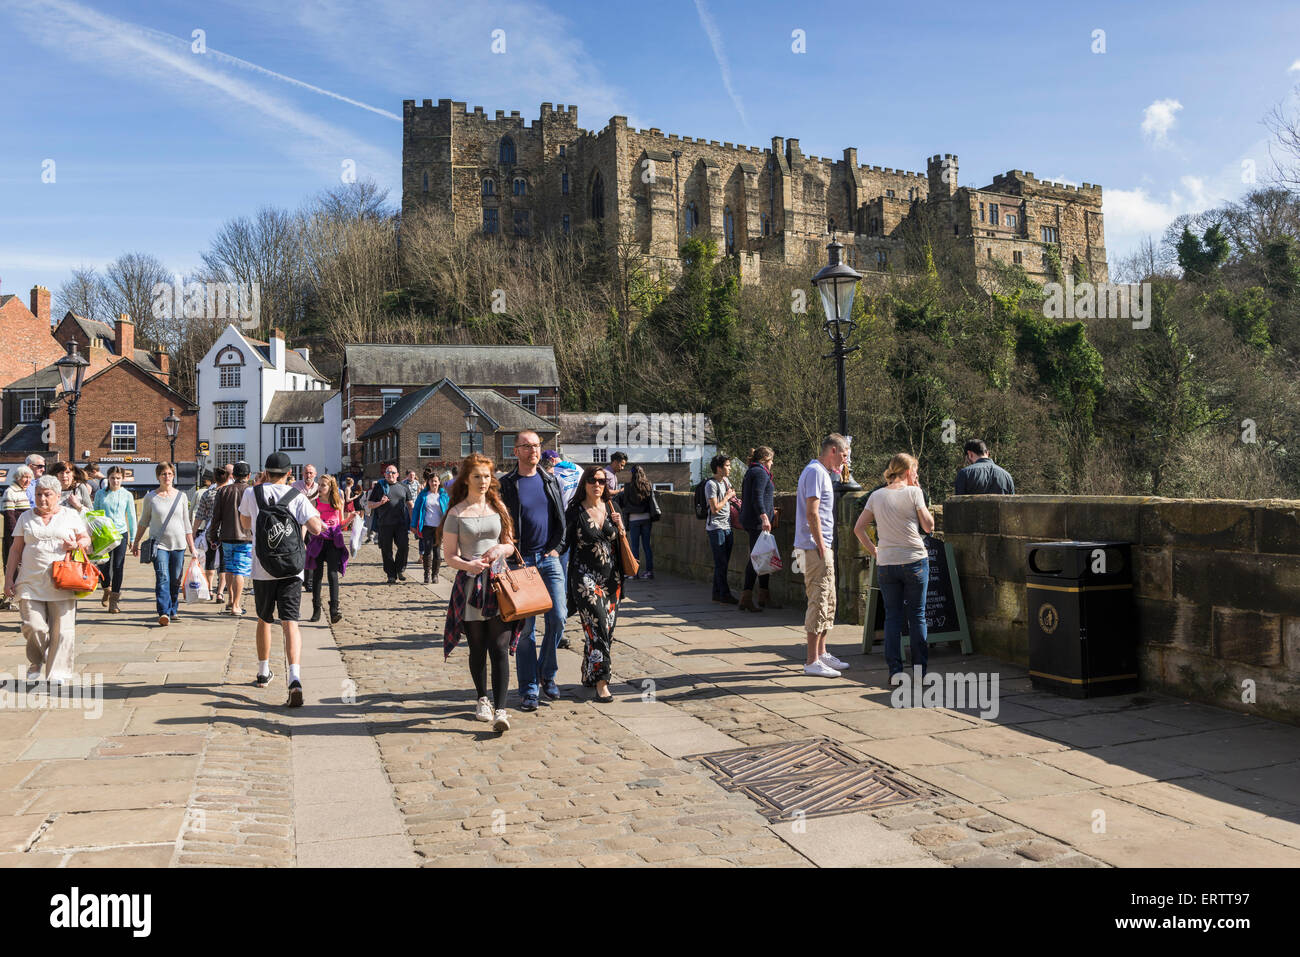 Durham Castle overlooks Framwellgate Bridge on the River Wear, Durham, England, UK with tourists on a sunny day - Stock Image